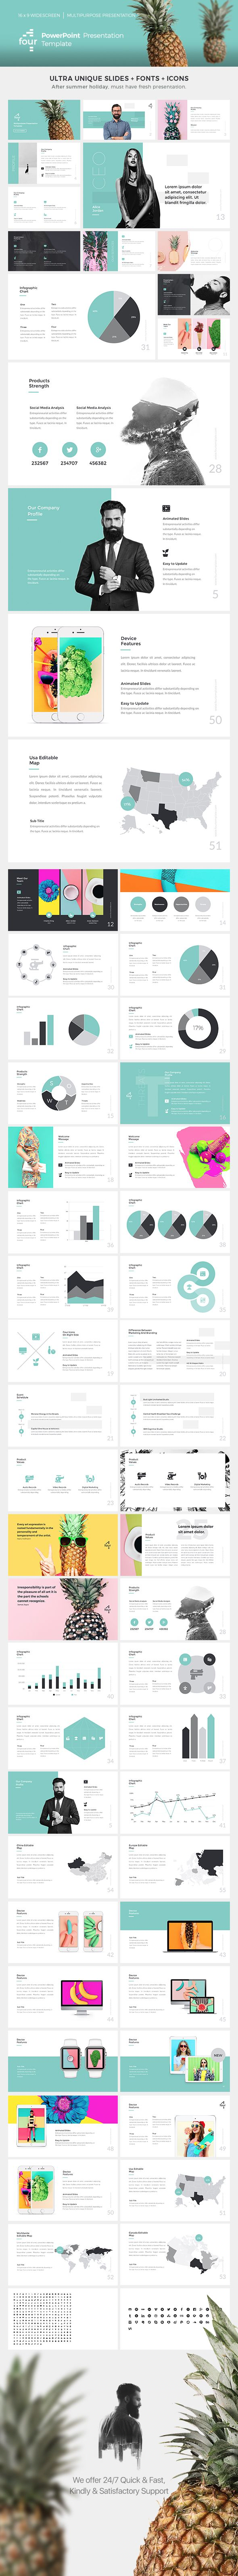 Four - PowerPoint Presentation Template. Download here: https://graphicriver.net/item/four-powerpoint-presentation-template/17564534?ref=ksioks